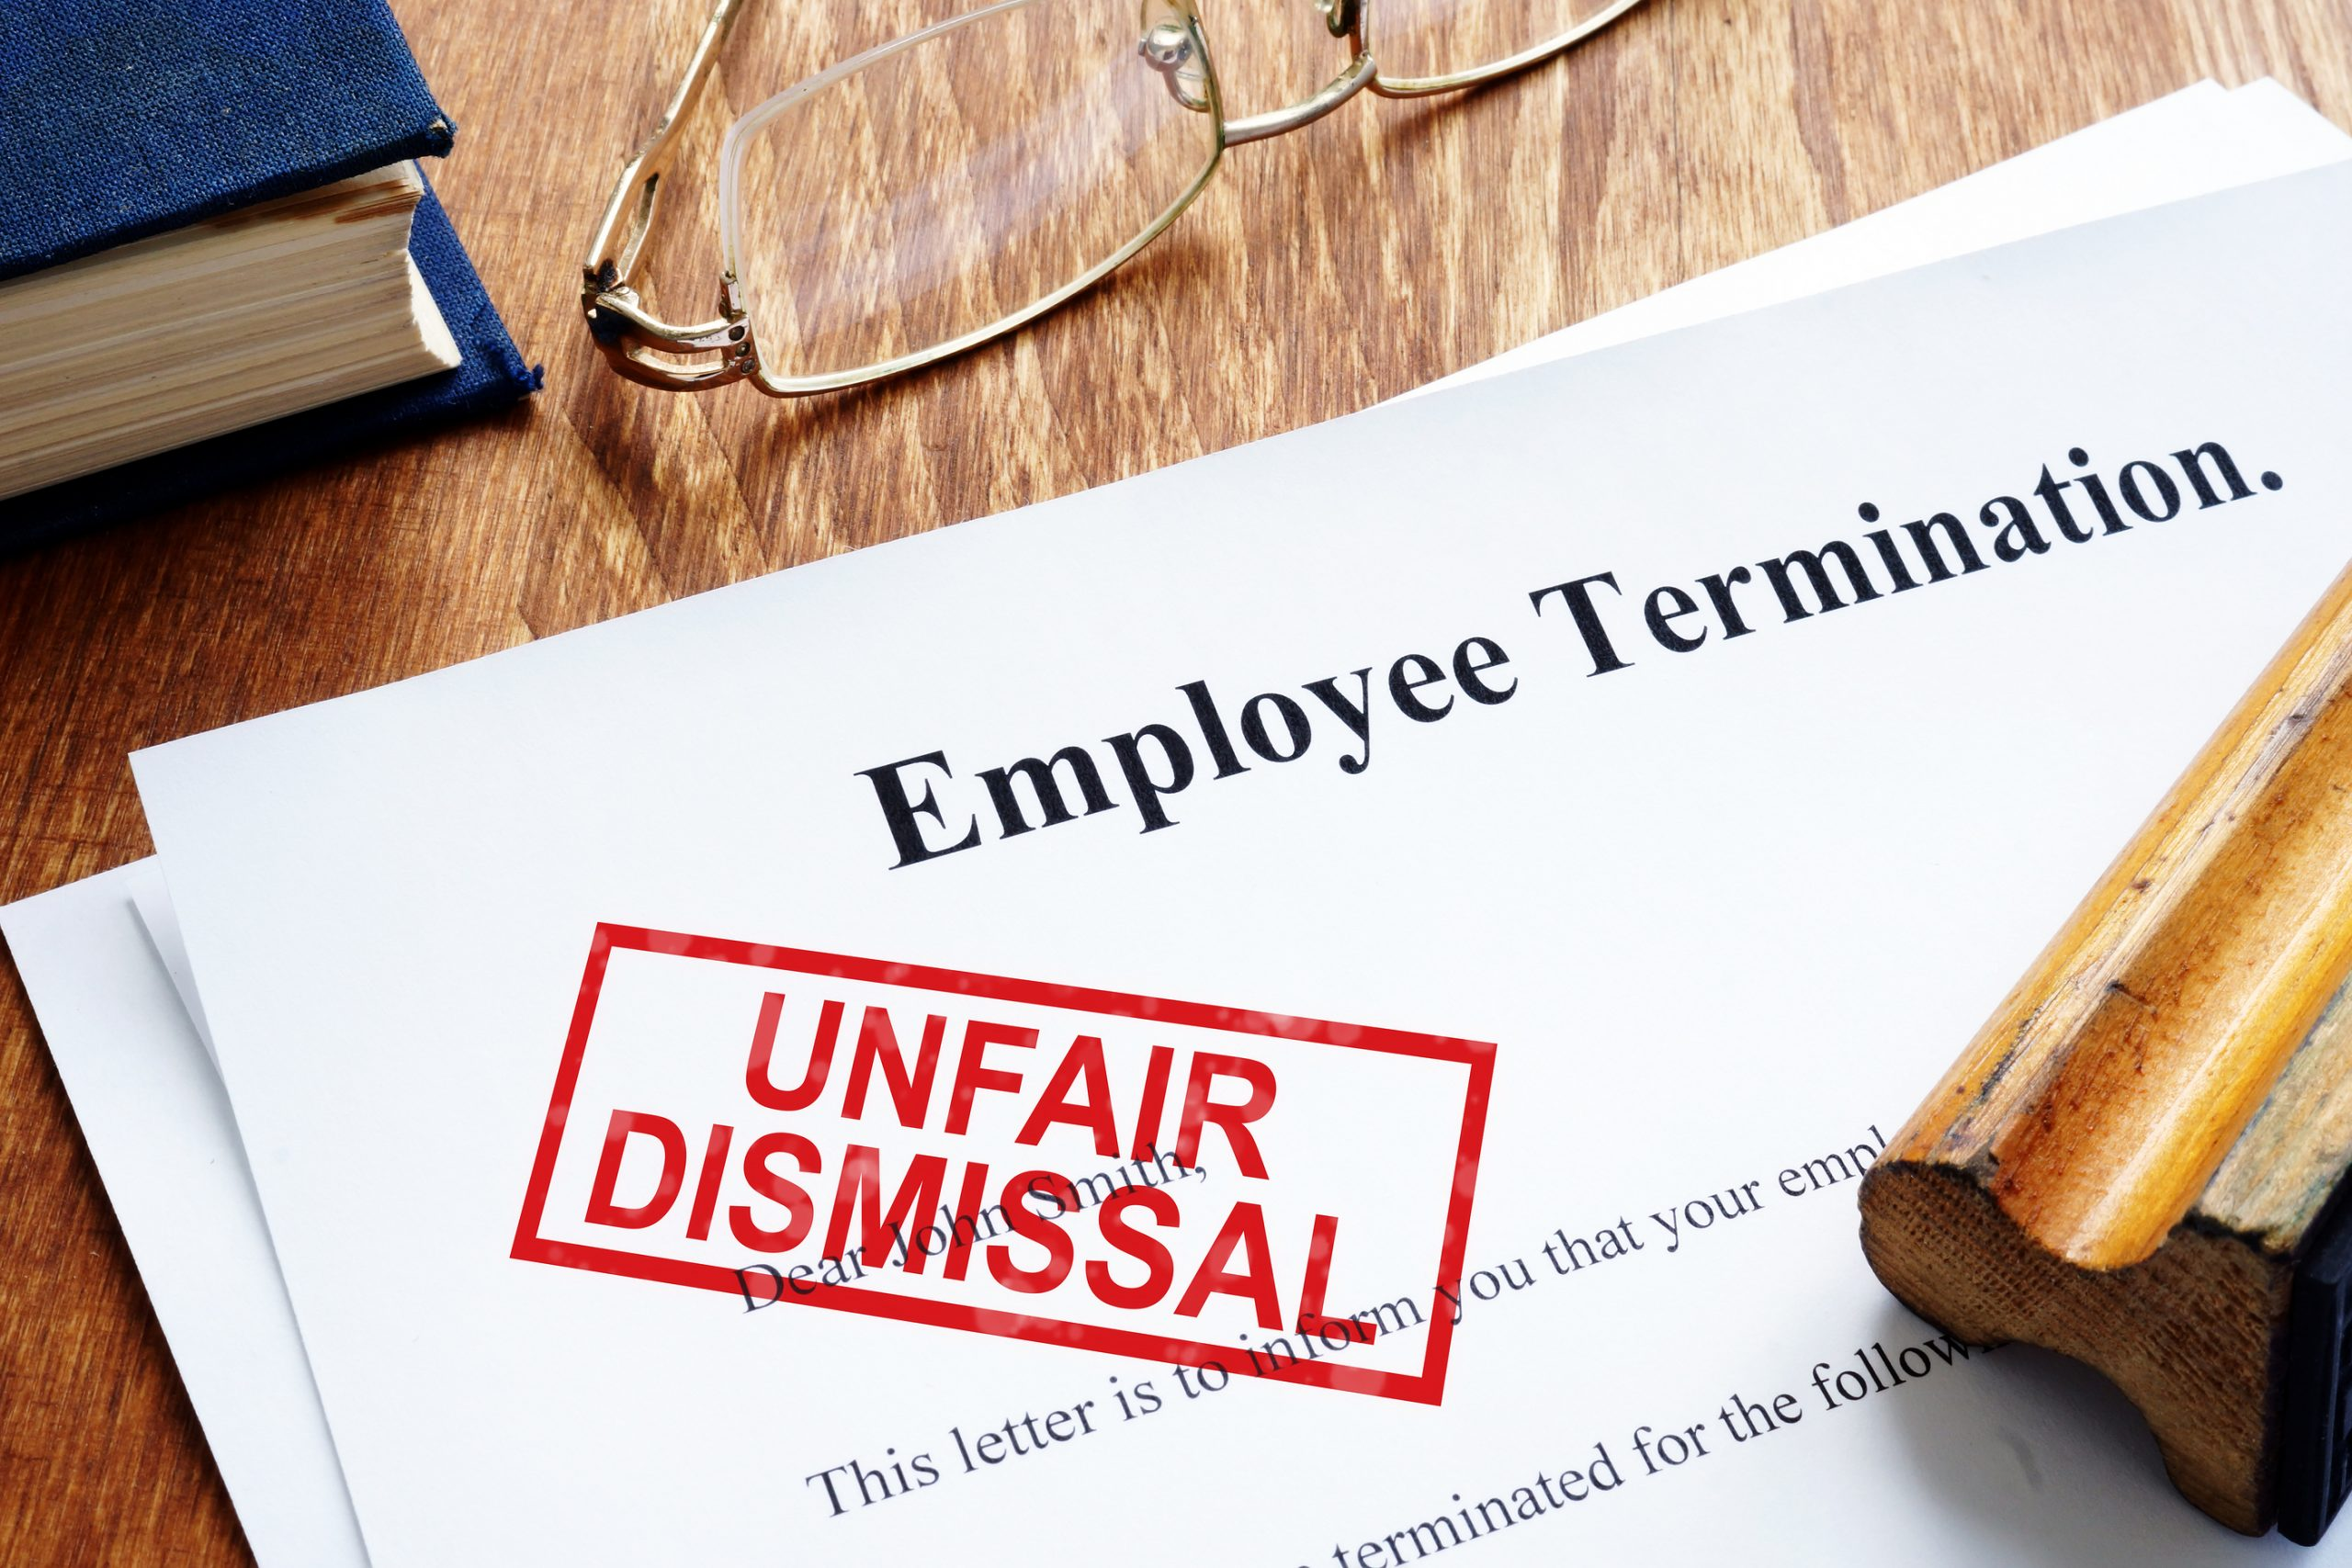 Picture of unfair dismissal stamped on termination paper